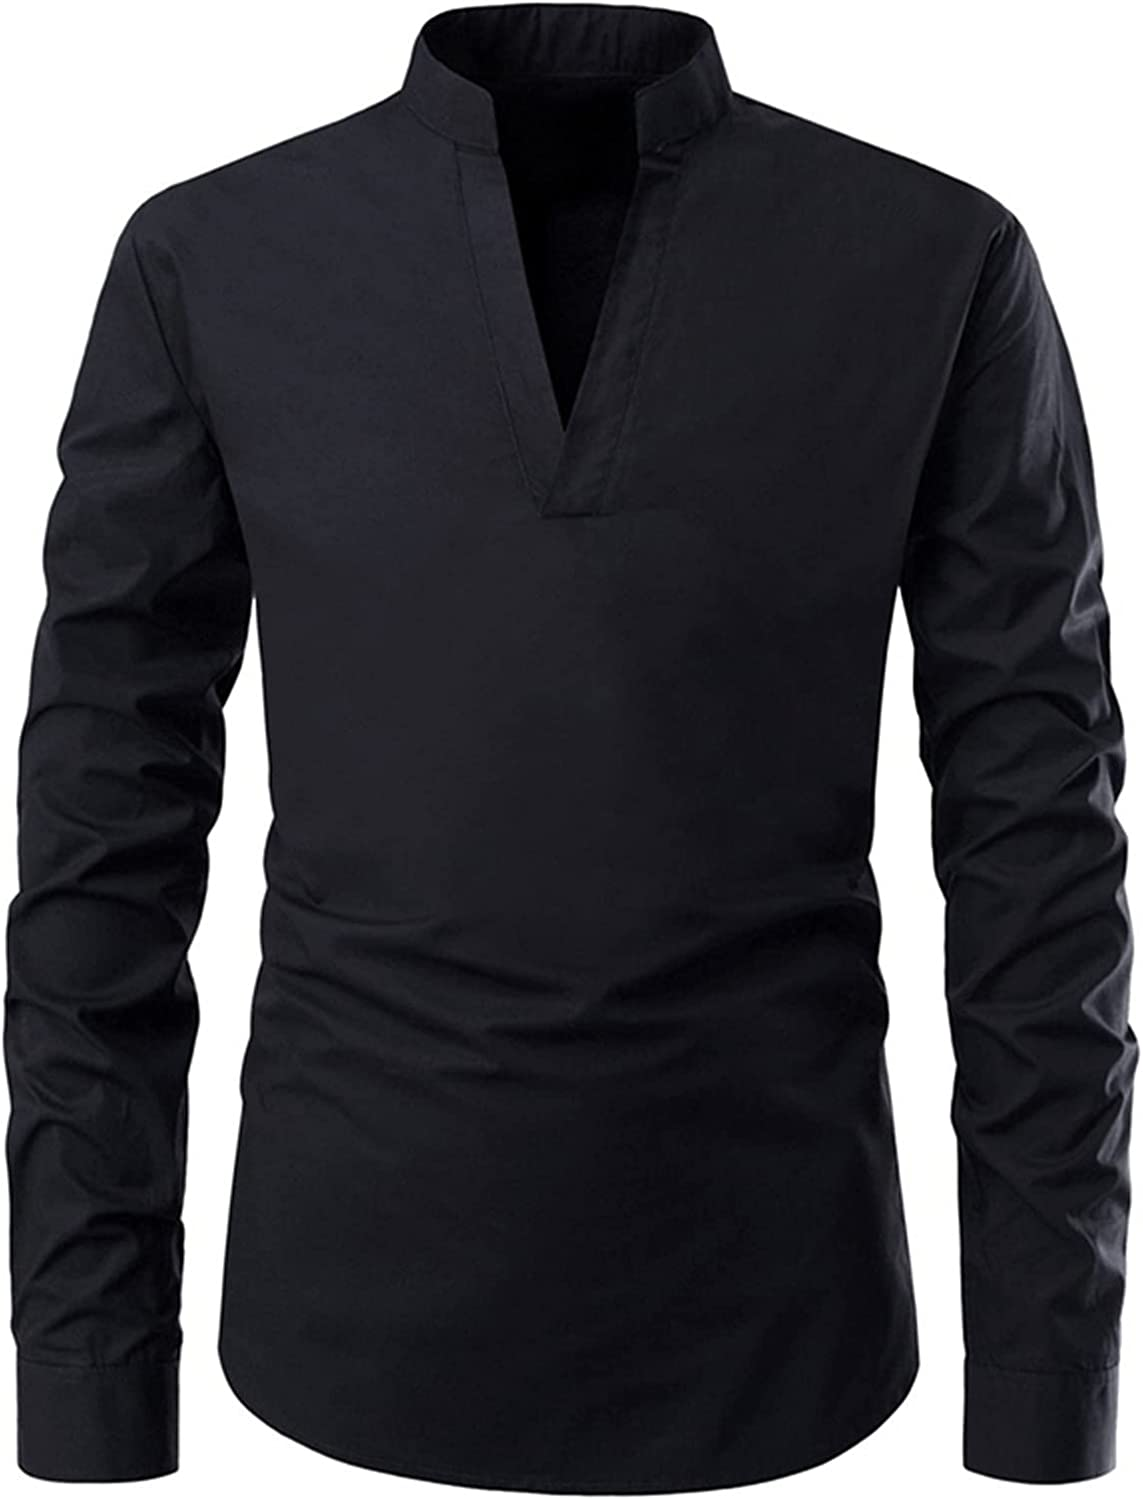 FUNEY Mens Fashion Slim Fit Long Sleeve T Shirts Casual Hippster V Neck Plain Stretch Beefy Henley Cotton Shirt Tops Jersey